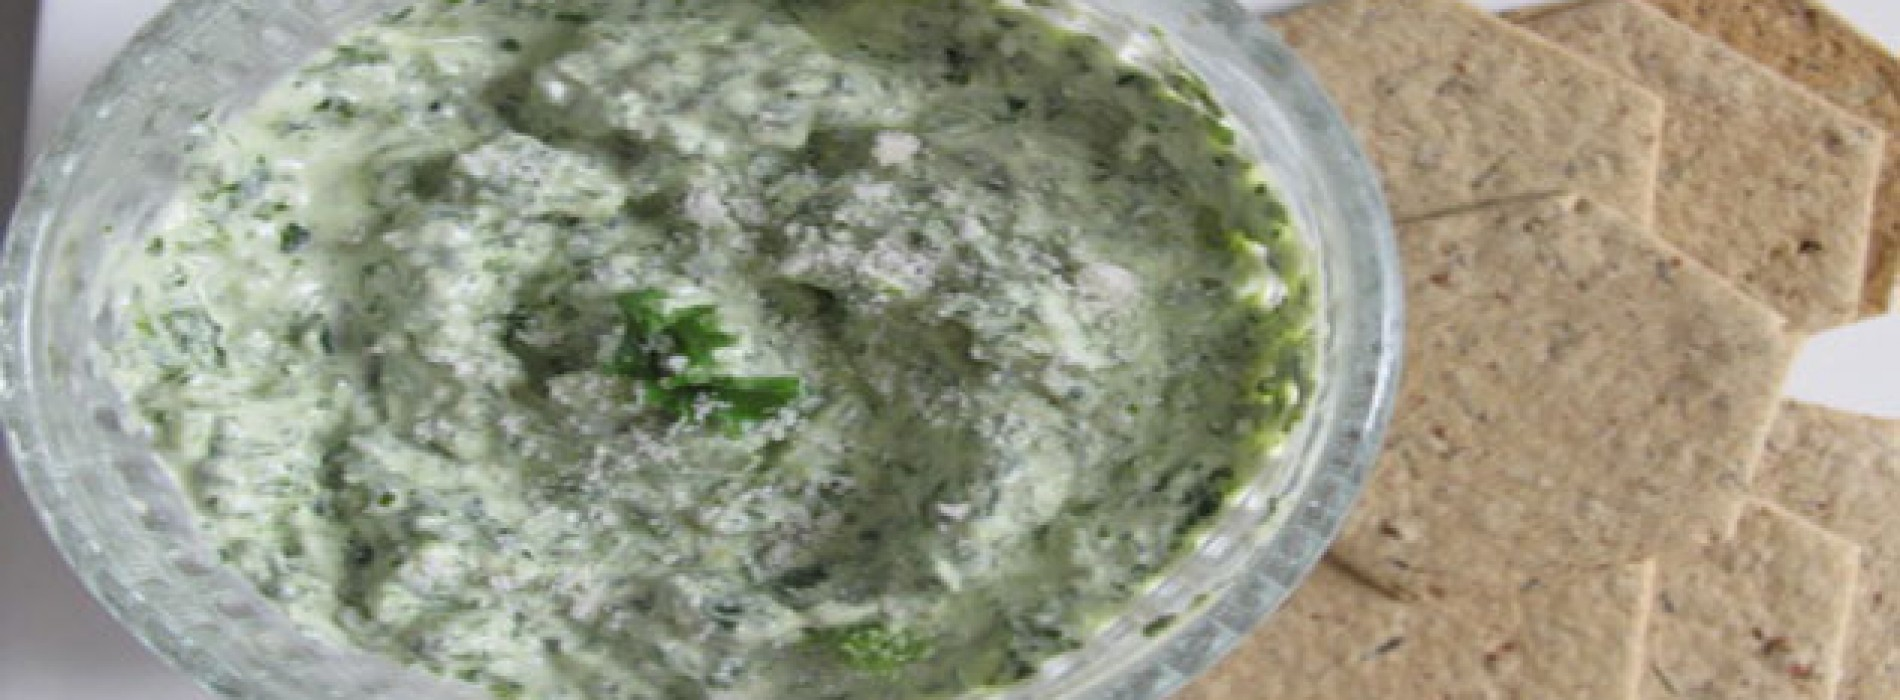 Garlic and Kale Dip